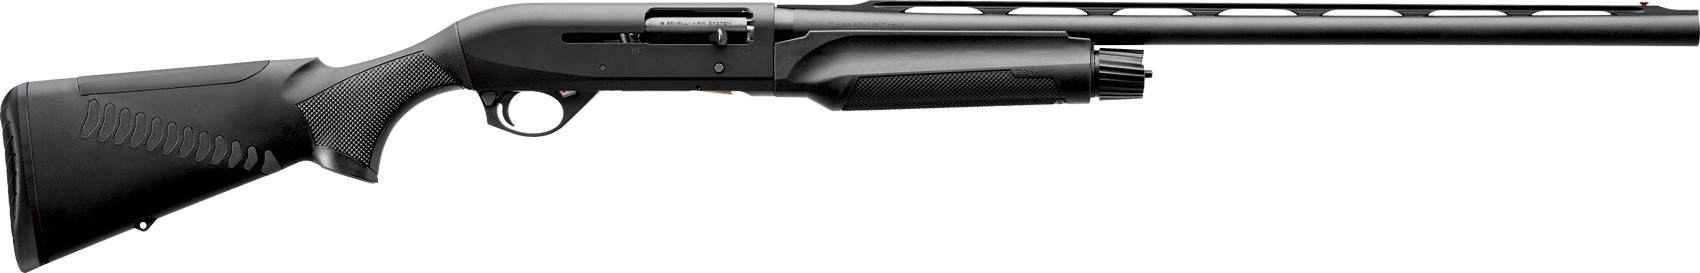 Benelli-M2-Comfortech-cal.20